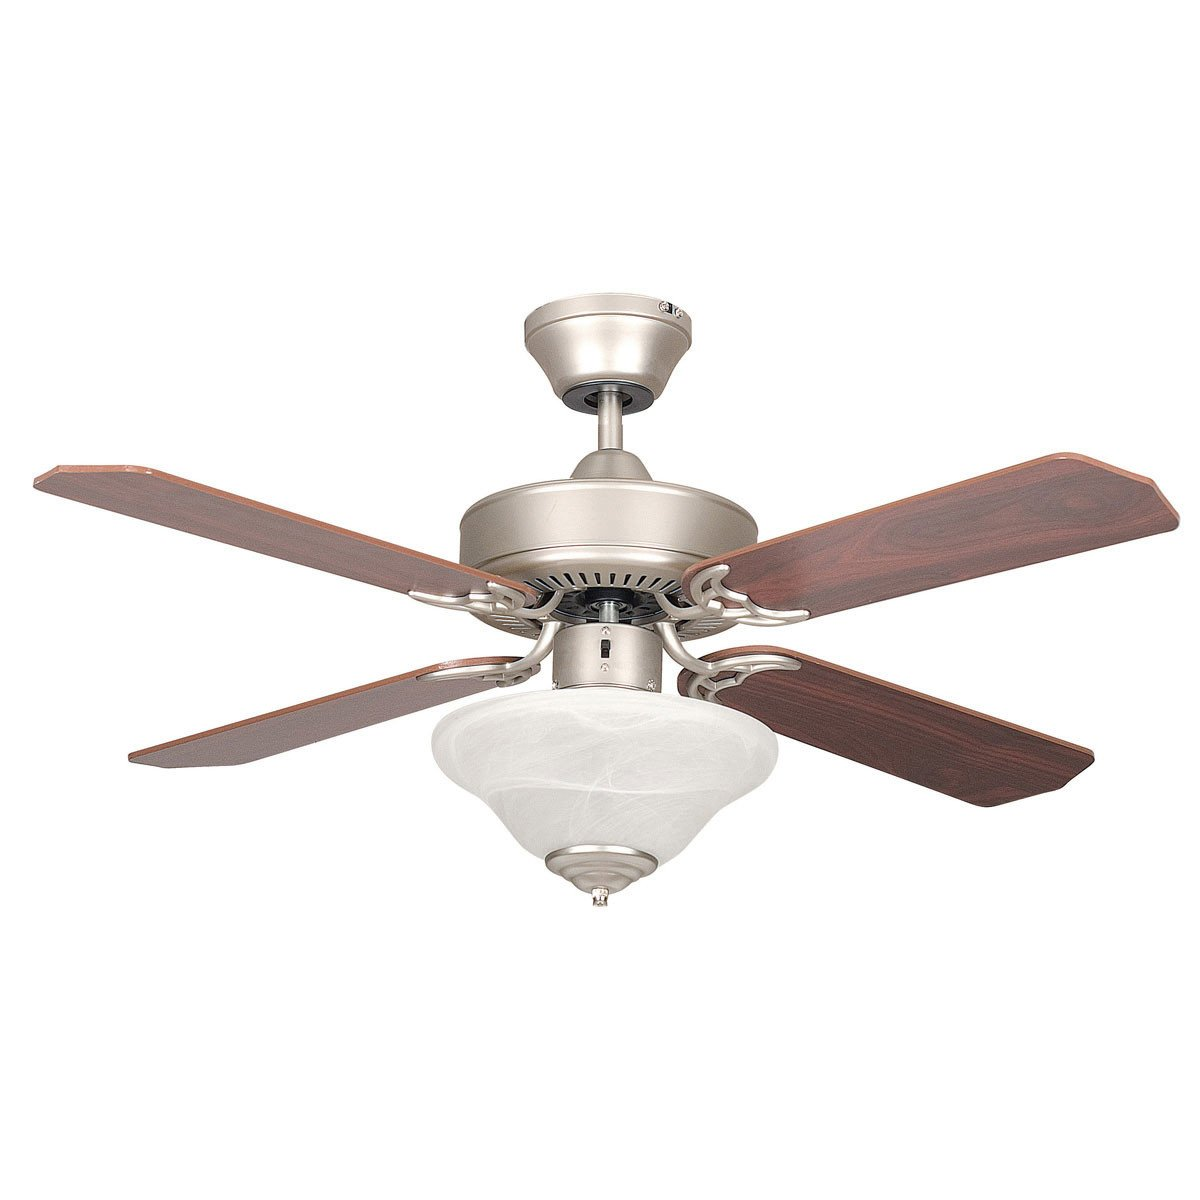 "Concord Fans 42"" Satin Nickel Modern Small Ceiling Fan with Bowl Style Light Kit"